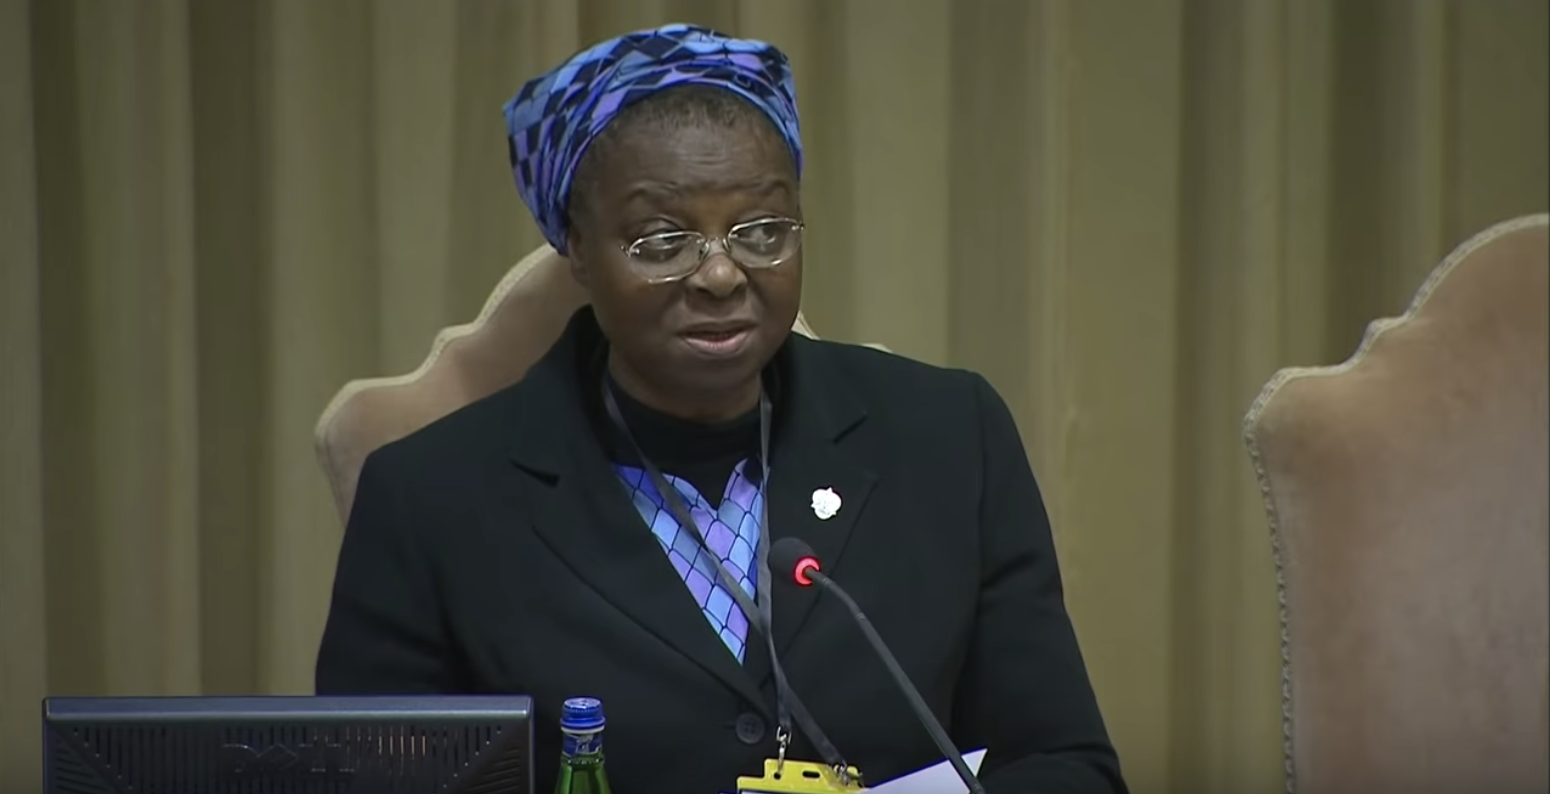 """Sister Veronica Openibo of Nigeria, Superior General of the Society of the Holy Child Jesus, delivered a presentation entitled """"Openness: sent out into the world"""" at the Vatican Sexual Abuse summit on """"The Protection of Minors in the Church"""" in Vatican City. Photo from her speech as seen on  YouTube ."""